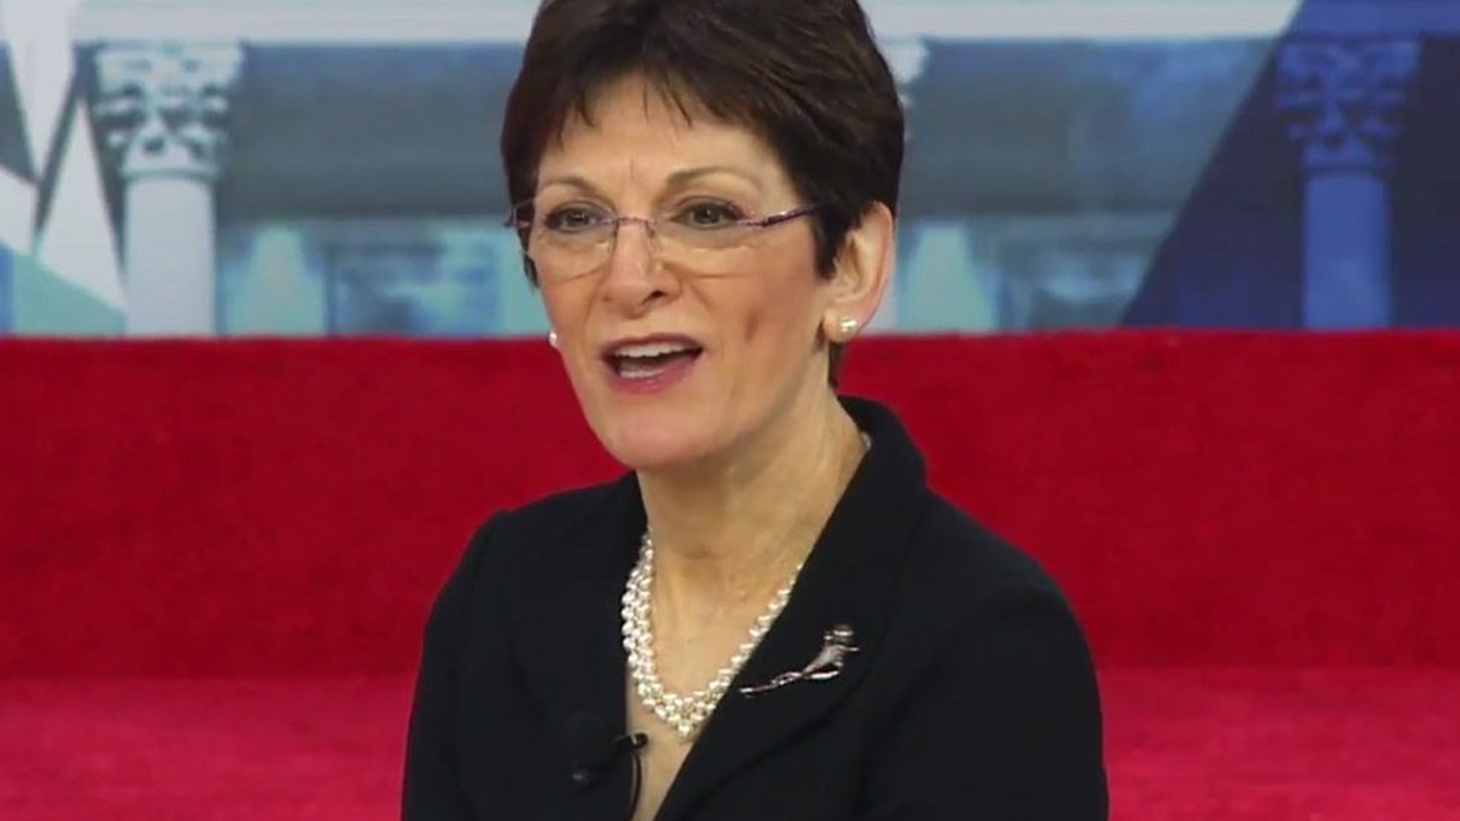 """Conservative columnist and political analyst Mona Charen was ready to fight at CPAC - the Conservative Political Action Conference. Now she says she was """"glad to be booed."""""""